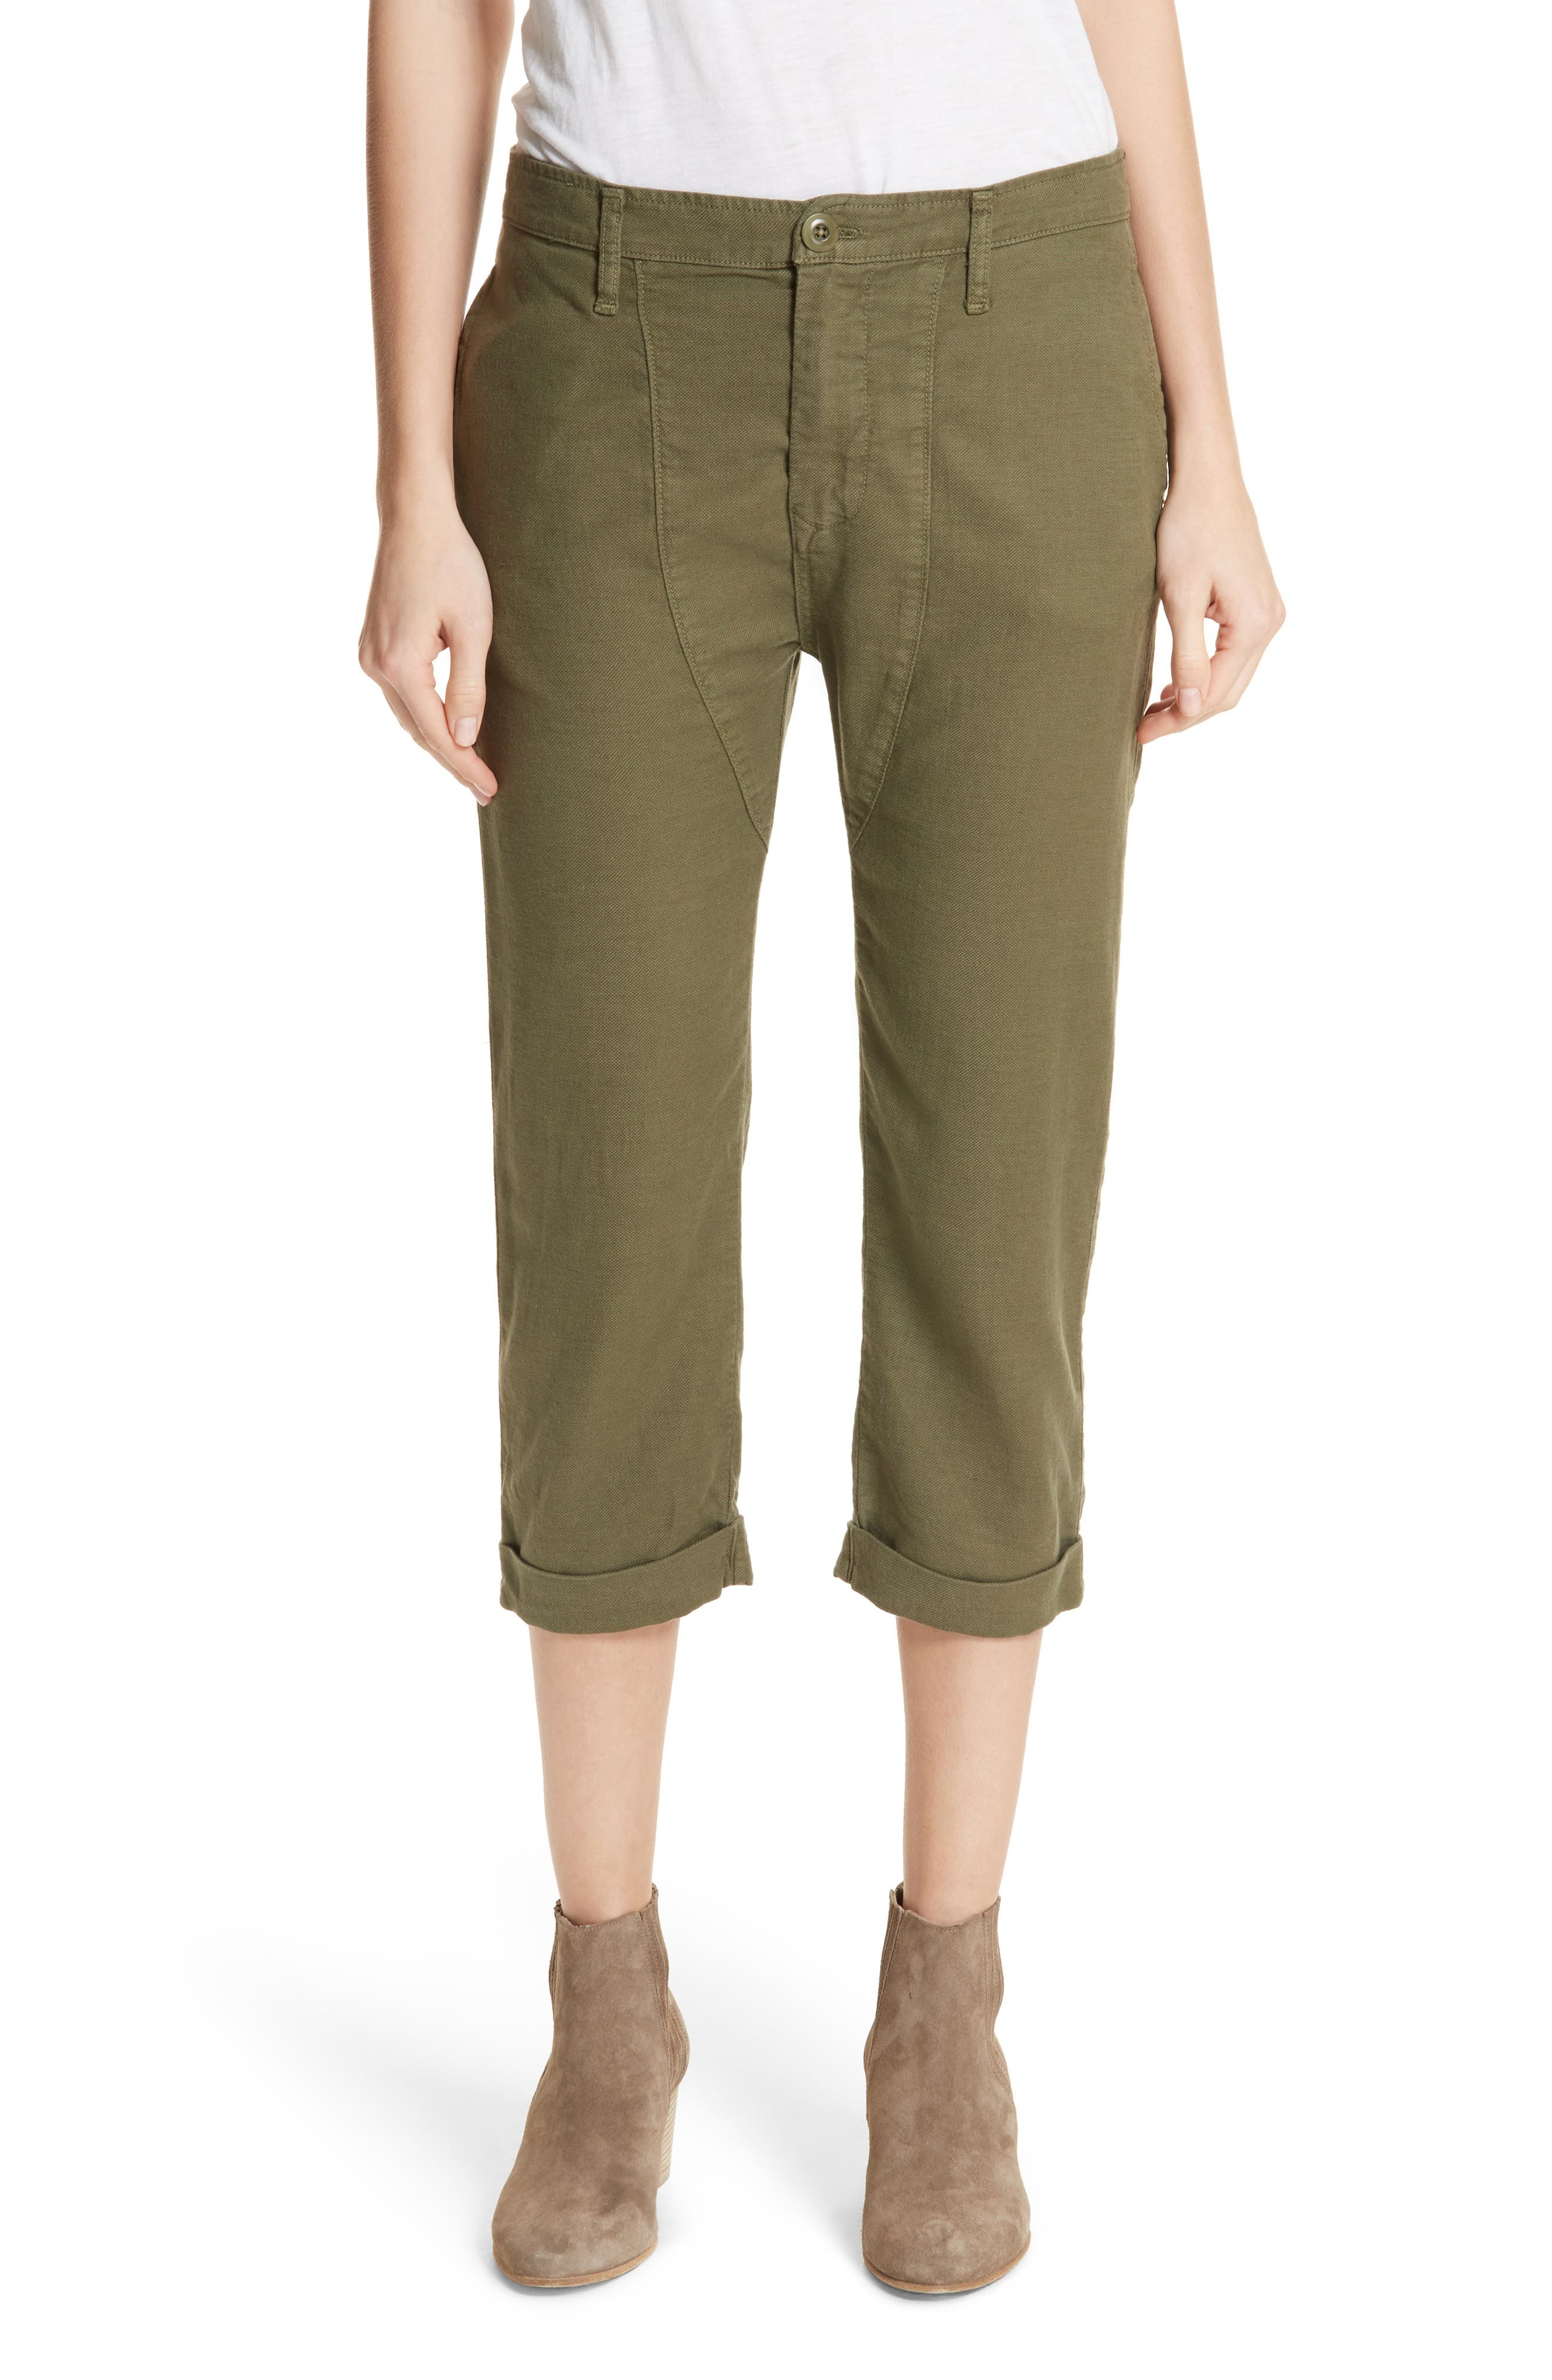 THE SADDLE TROUSER